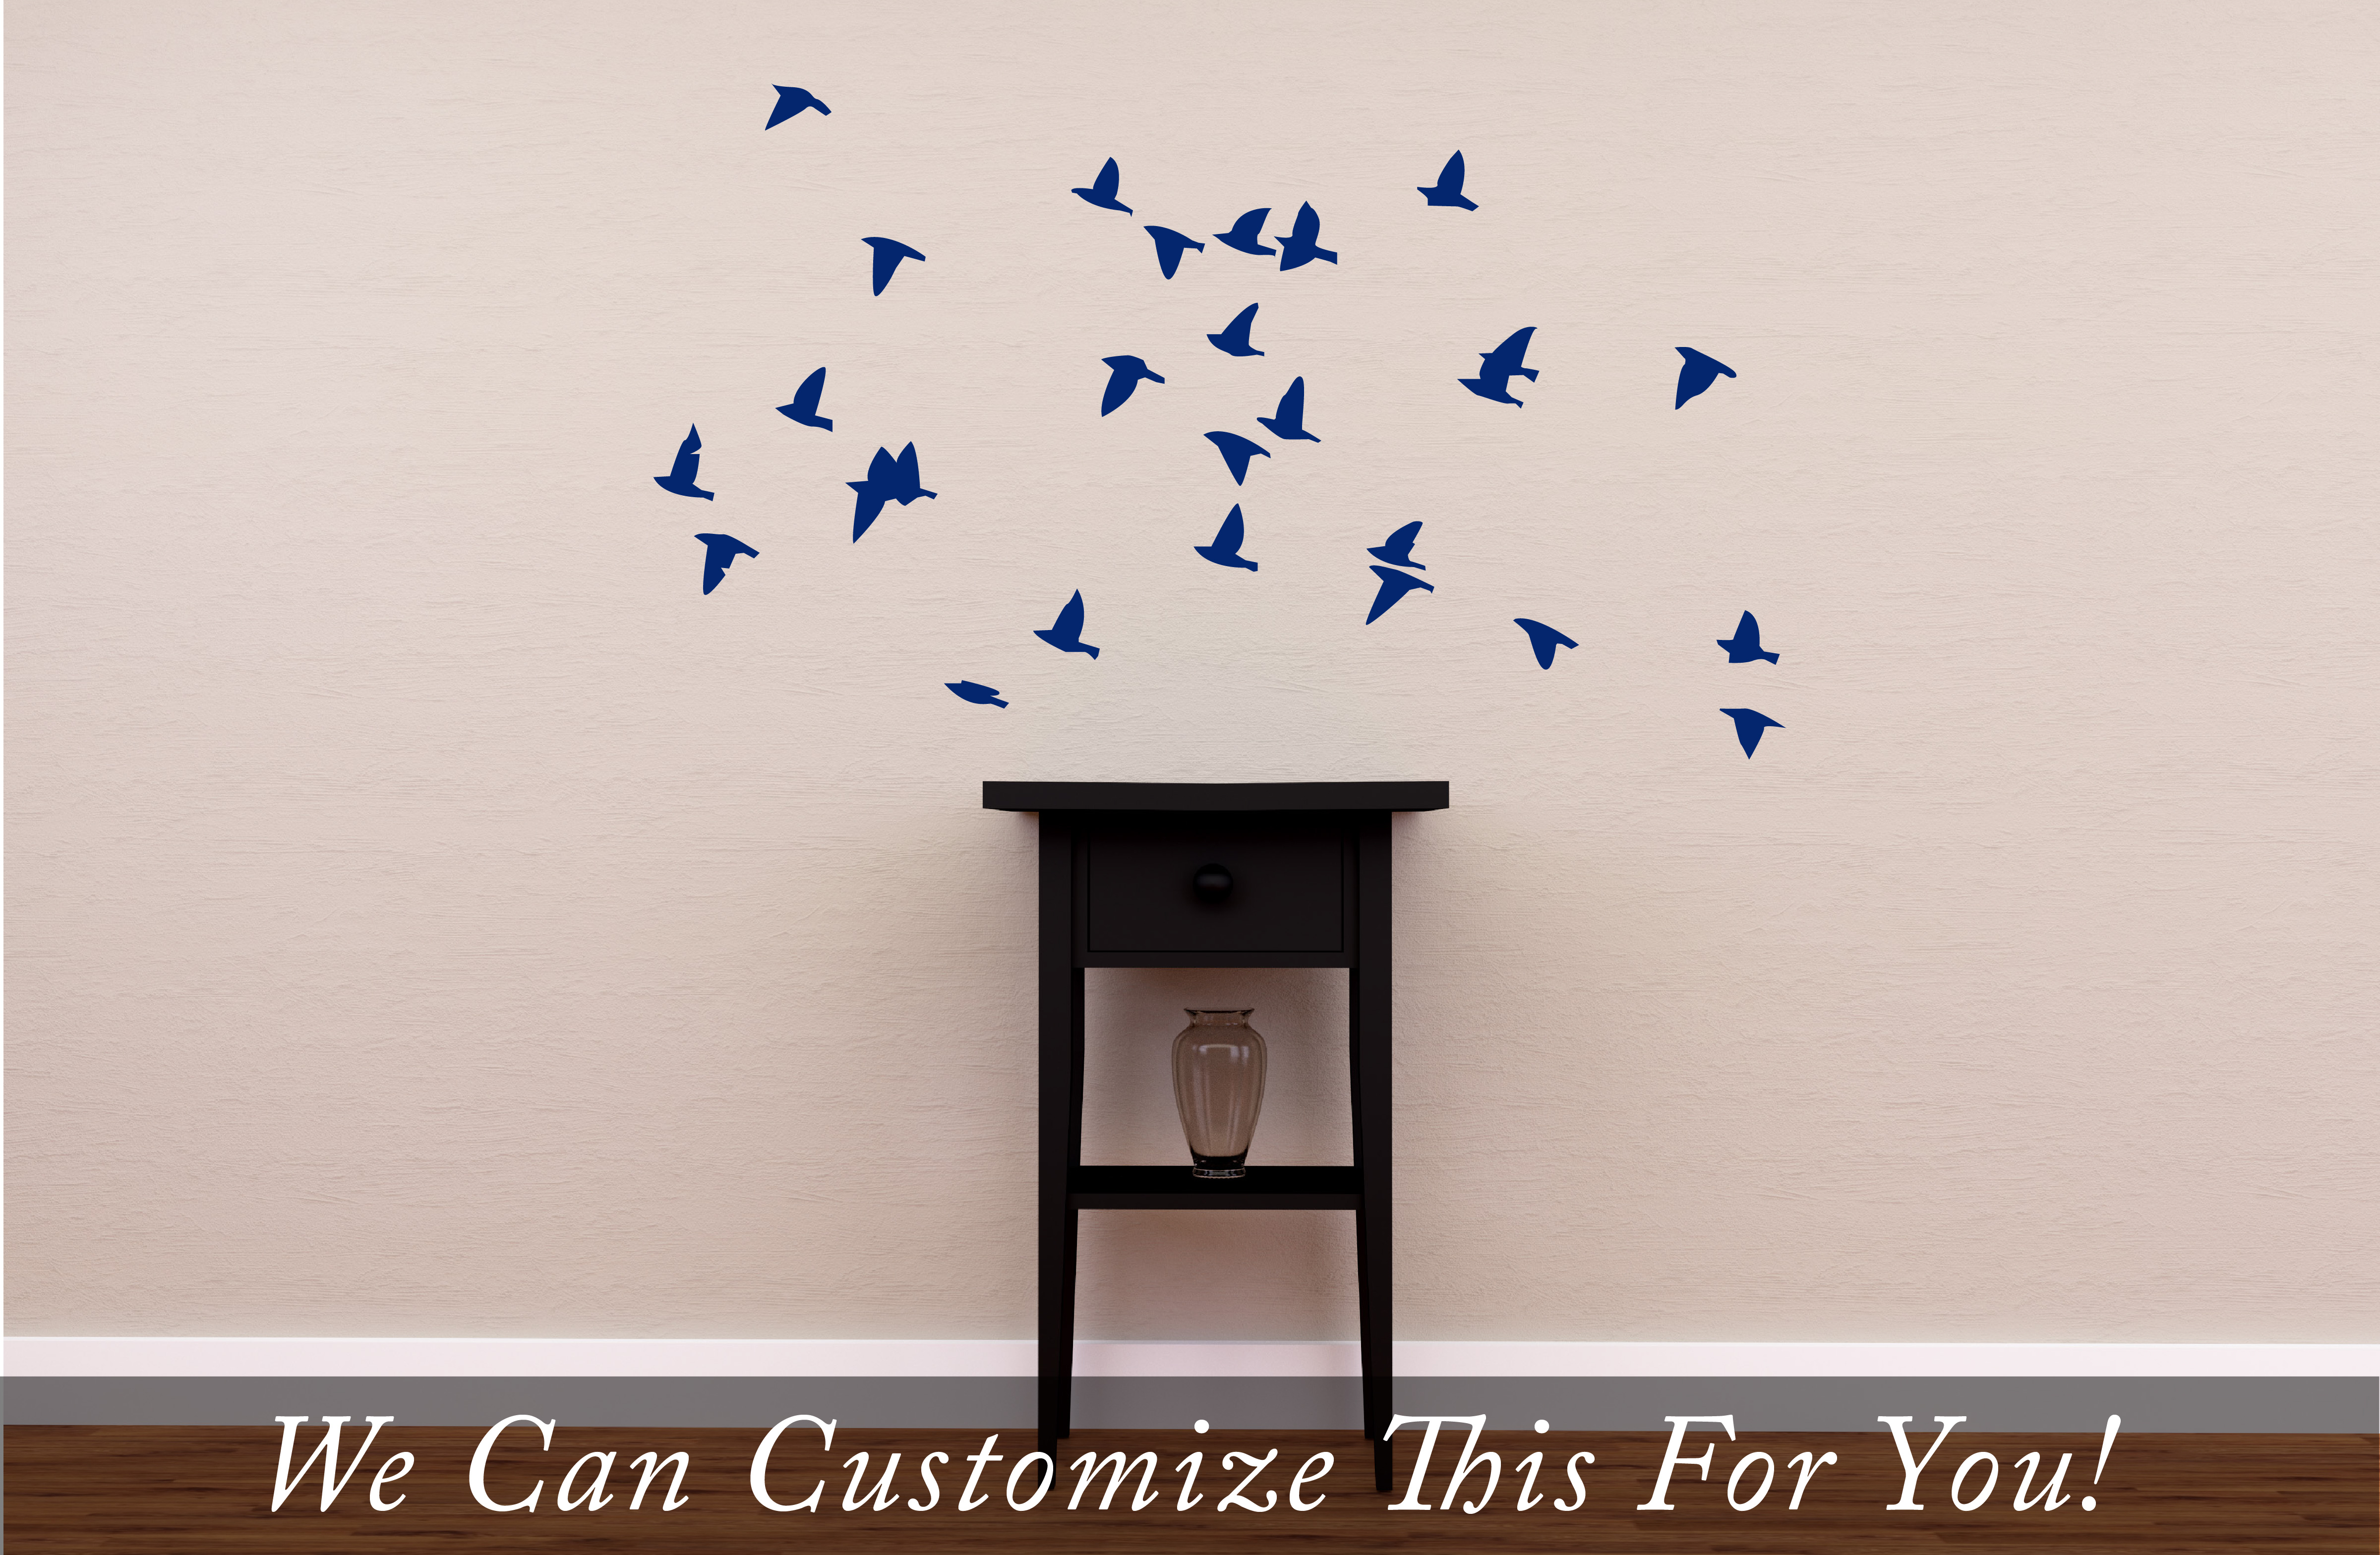 Bird flock flying in air and sky small set of 26 wall vinyl decal bird flock flying in air and sky small set of 26 wall vinyl decal stickers silhouettes 2039 amipublicfo Images